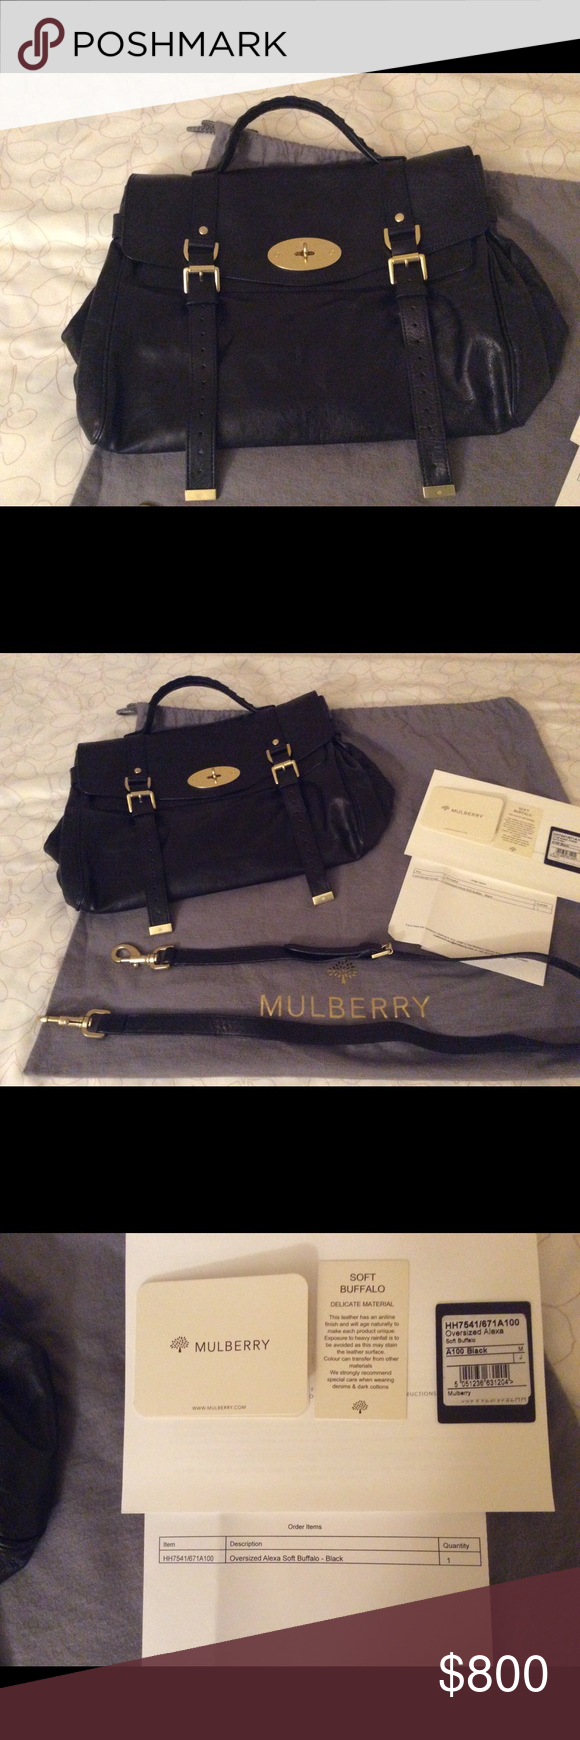 Mulberry oversized Alexa like new Authentic Oversized Alexa like new, used 3 times only Comes with original dust bag and shopping bag No trade Mulberry Bags Crossbody Bags #mulberrybag Mulberry oversized Alexa like new Authentic Oversized Alexa like new, used 3 times only Comes with original dust bag and shopping bag No trade Mulberry Bags Crossbody Bags #mulberrybag